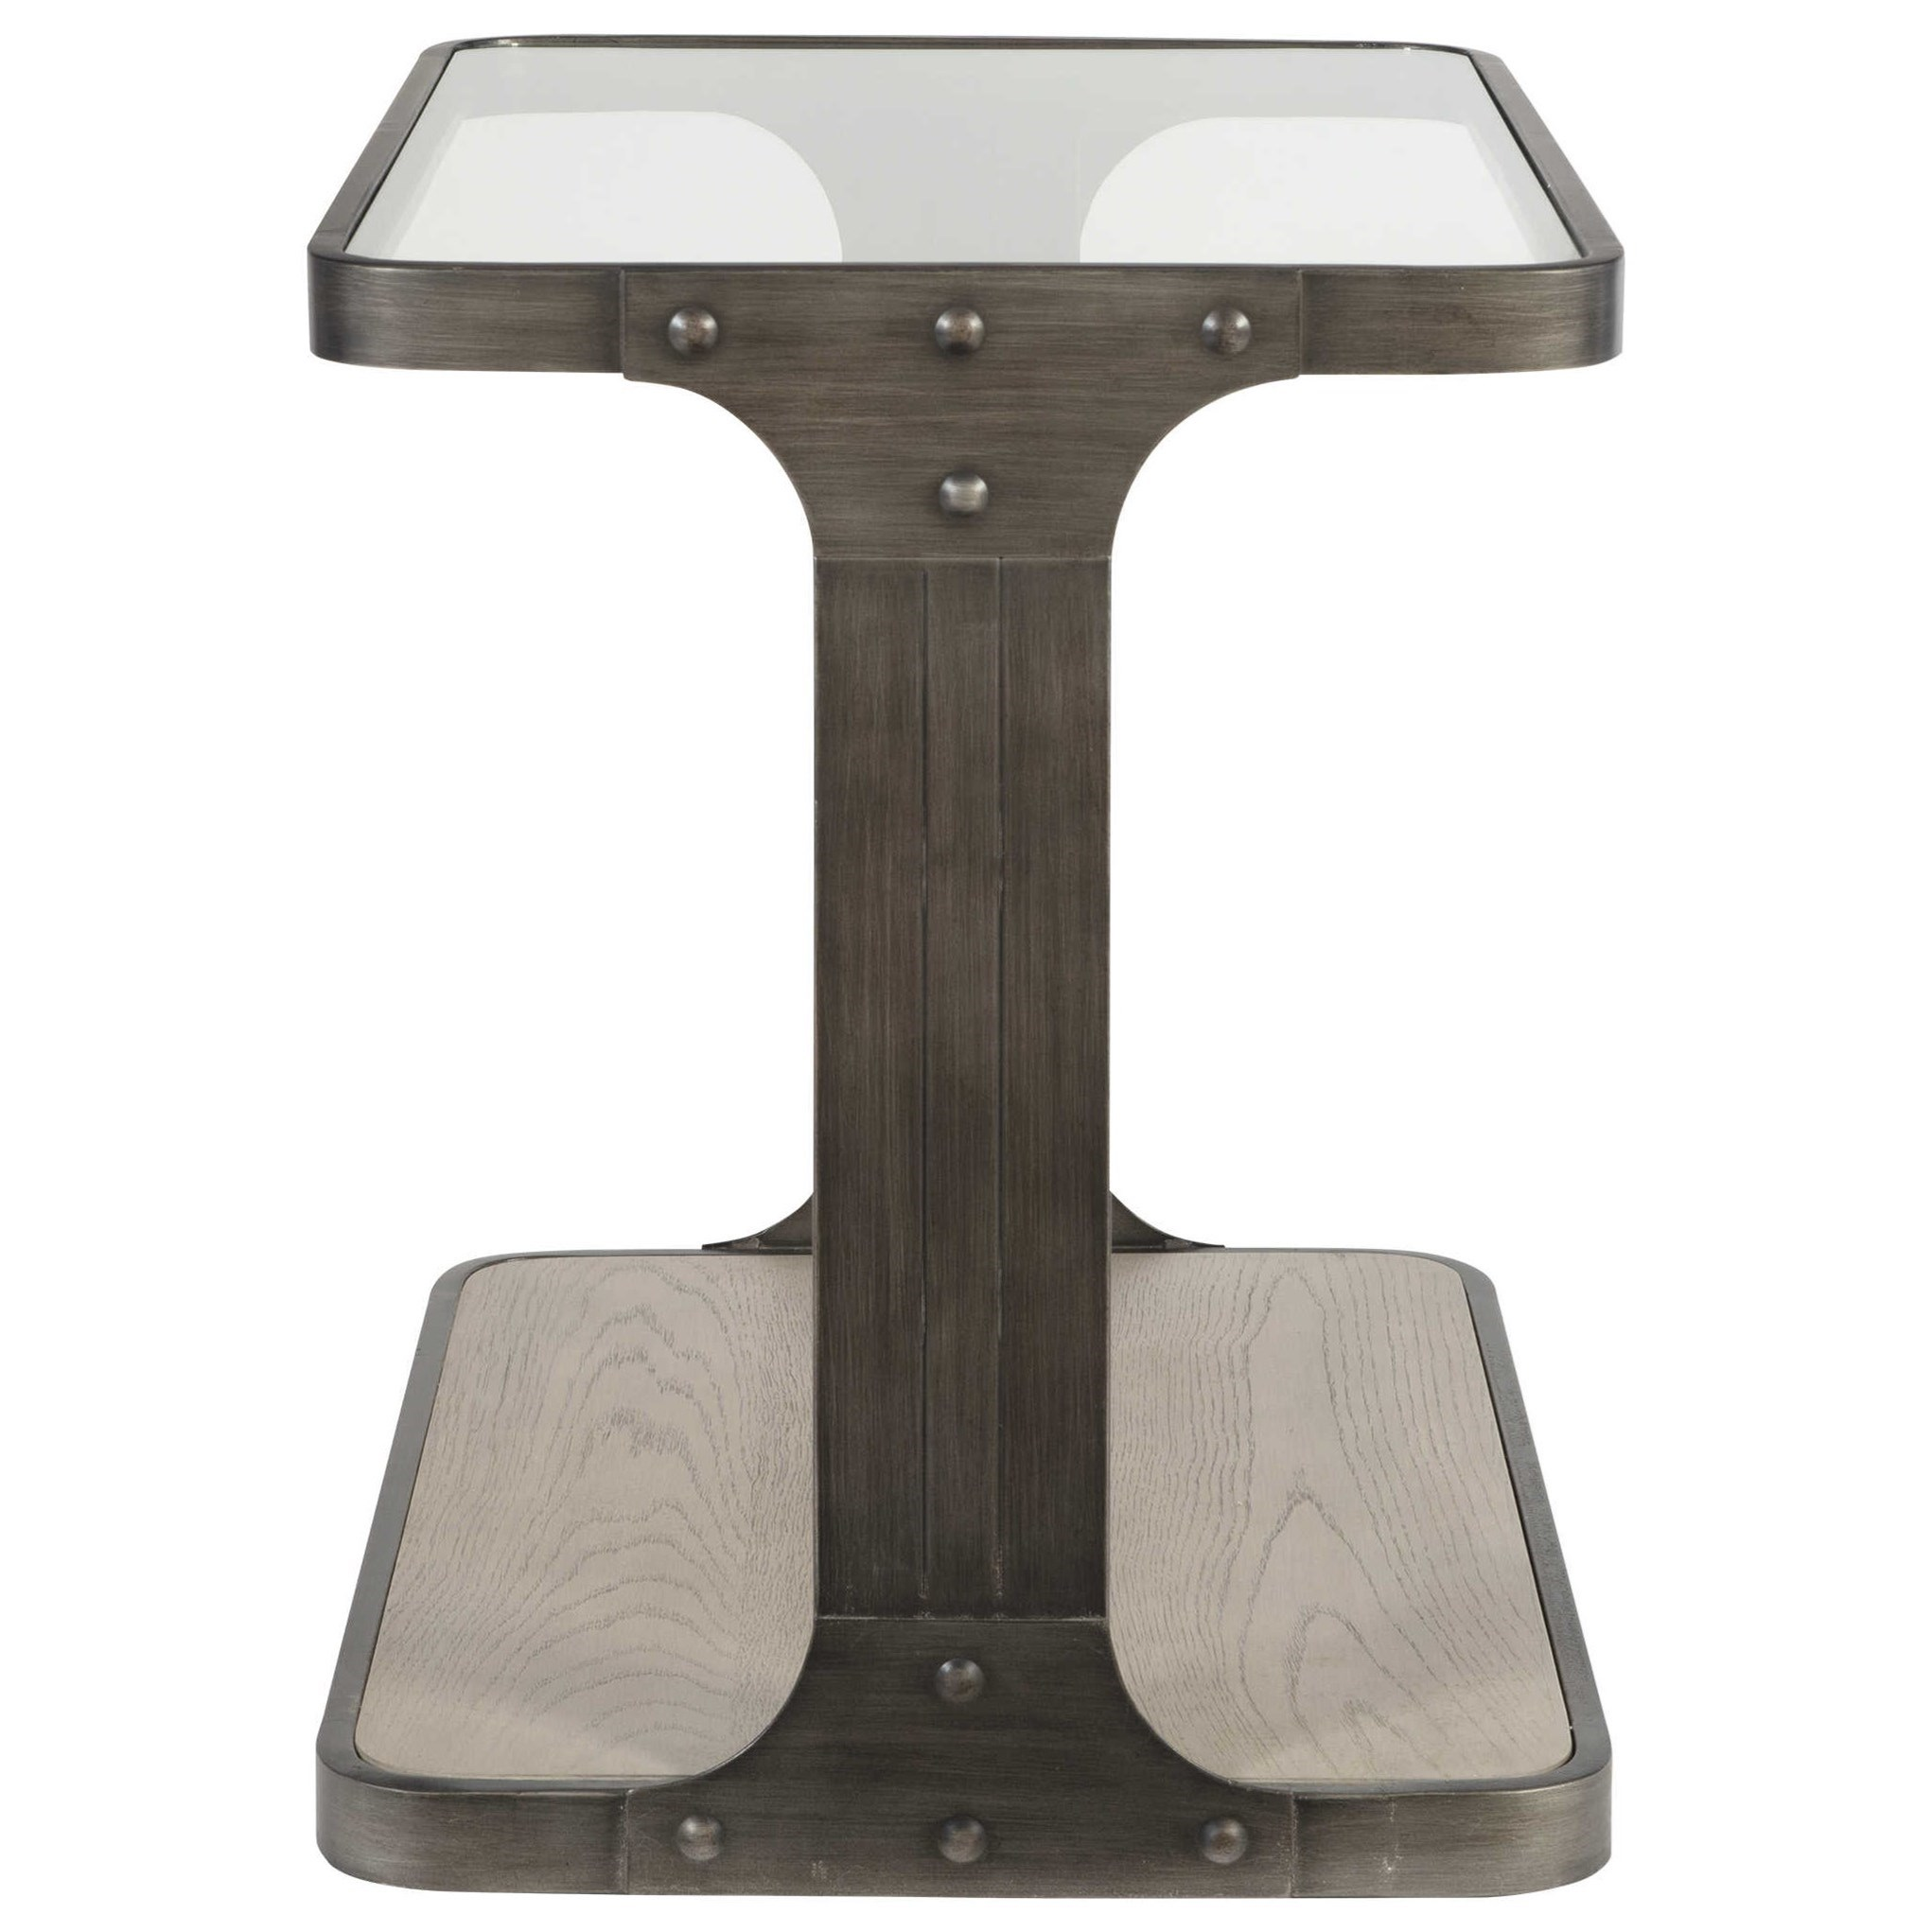 Accent Furniture - Occasional Tables Compton Industrial Side Table by Uttermost at Dunk & Bright Furniture